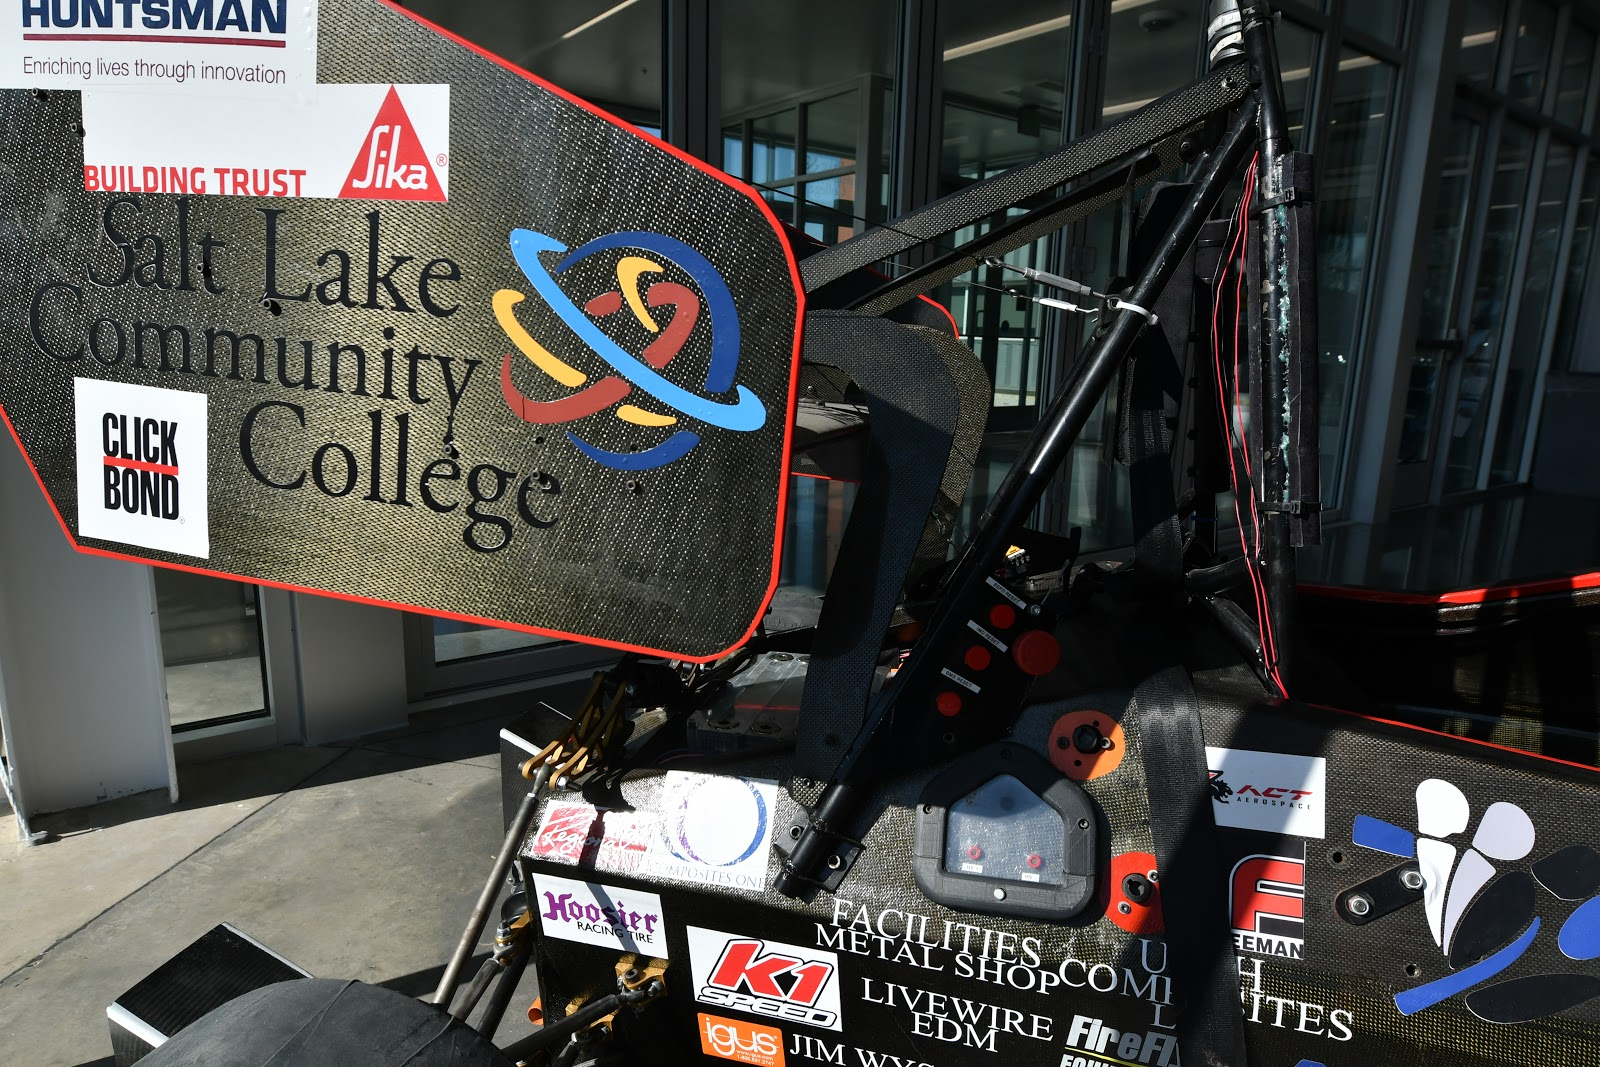 SLCC logo on wing of electric car